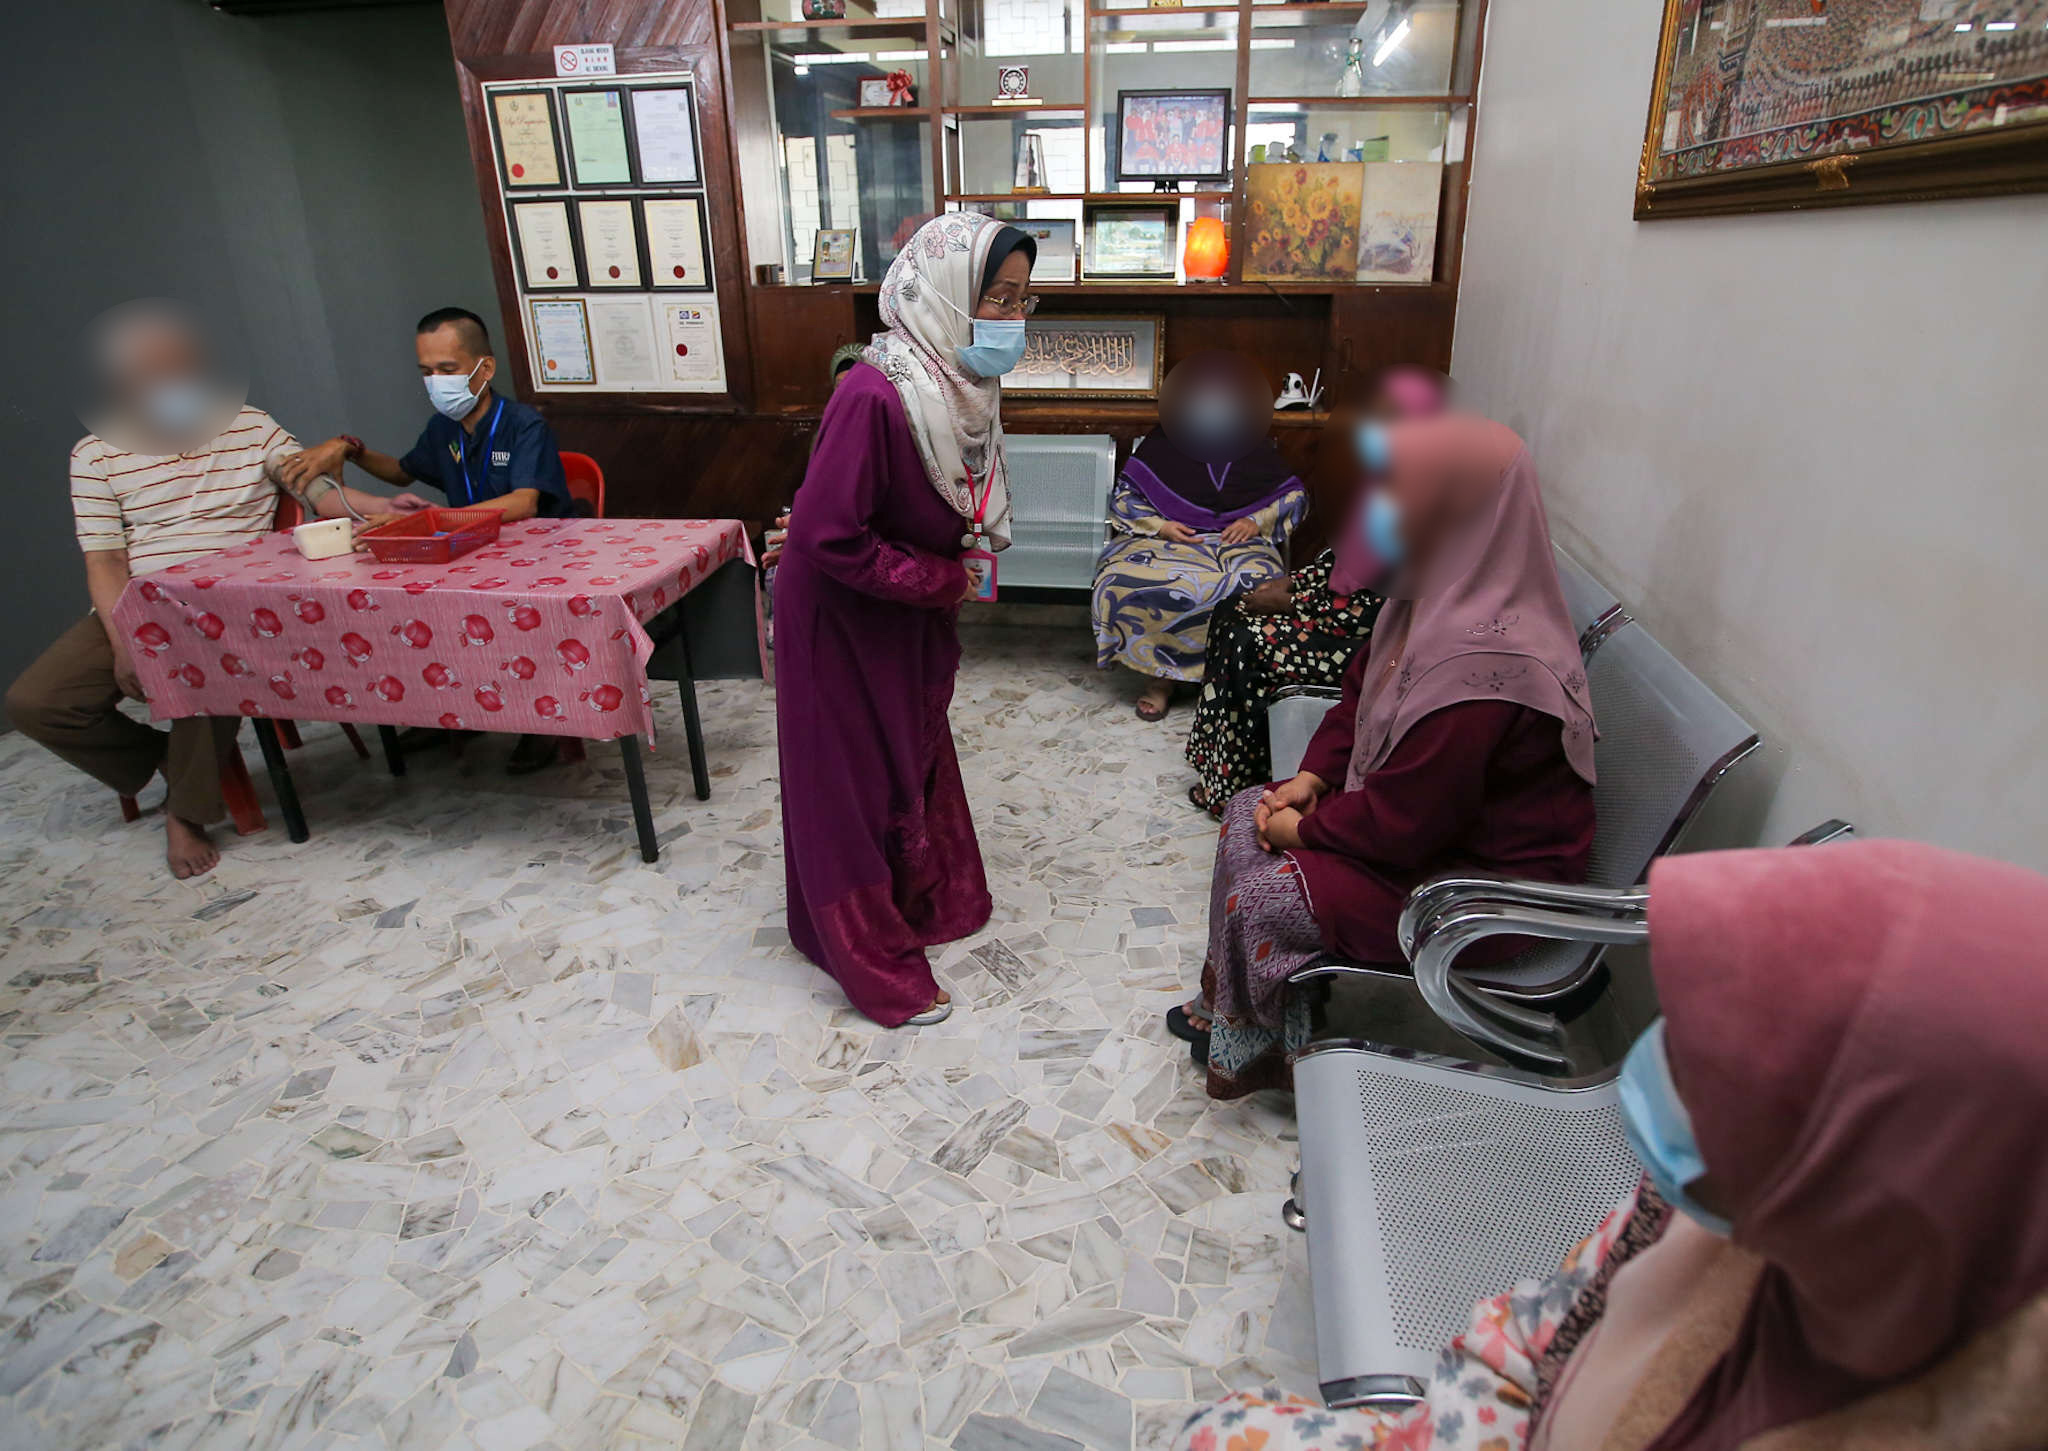 Fitrah Nursing Care founder Fatimah Abdullah (entre) said there are 58 residents at their home. — Pictures by Farhan Najib